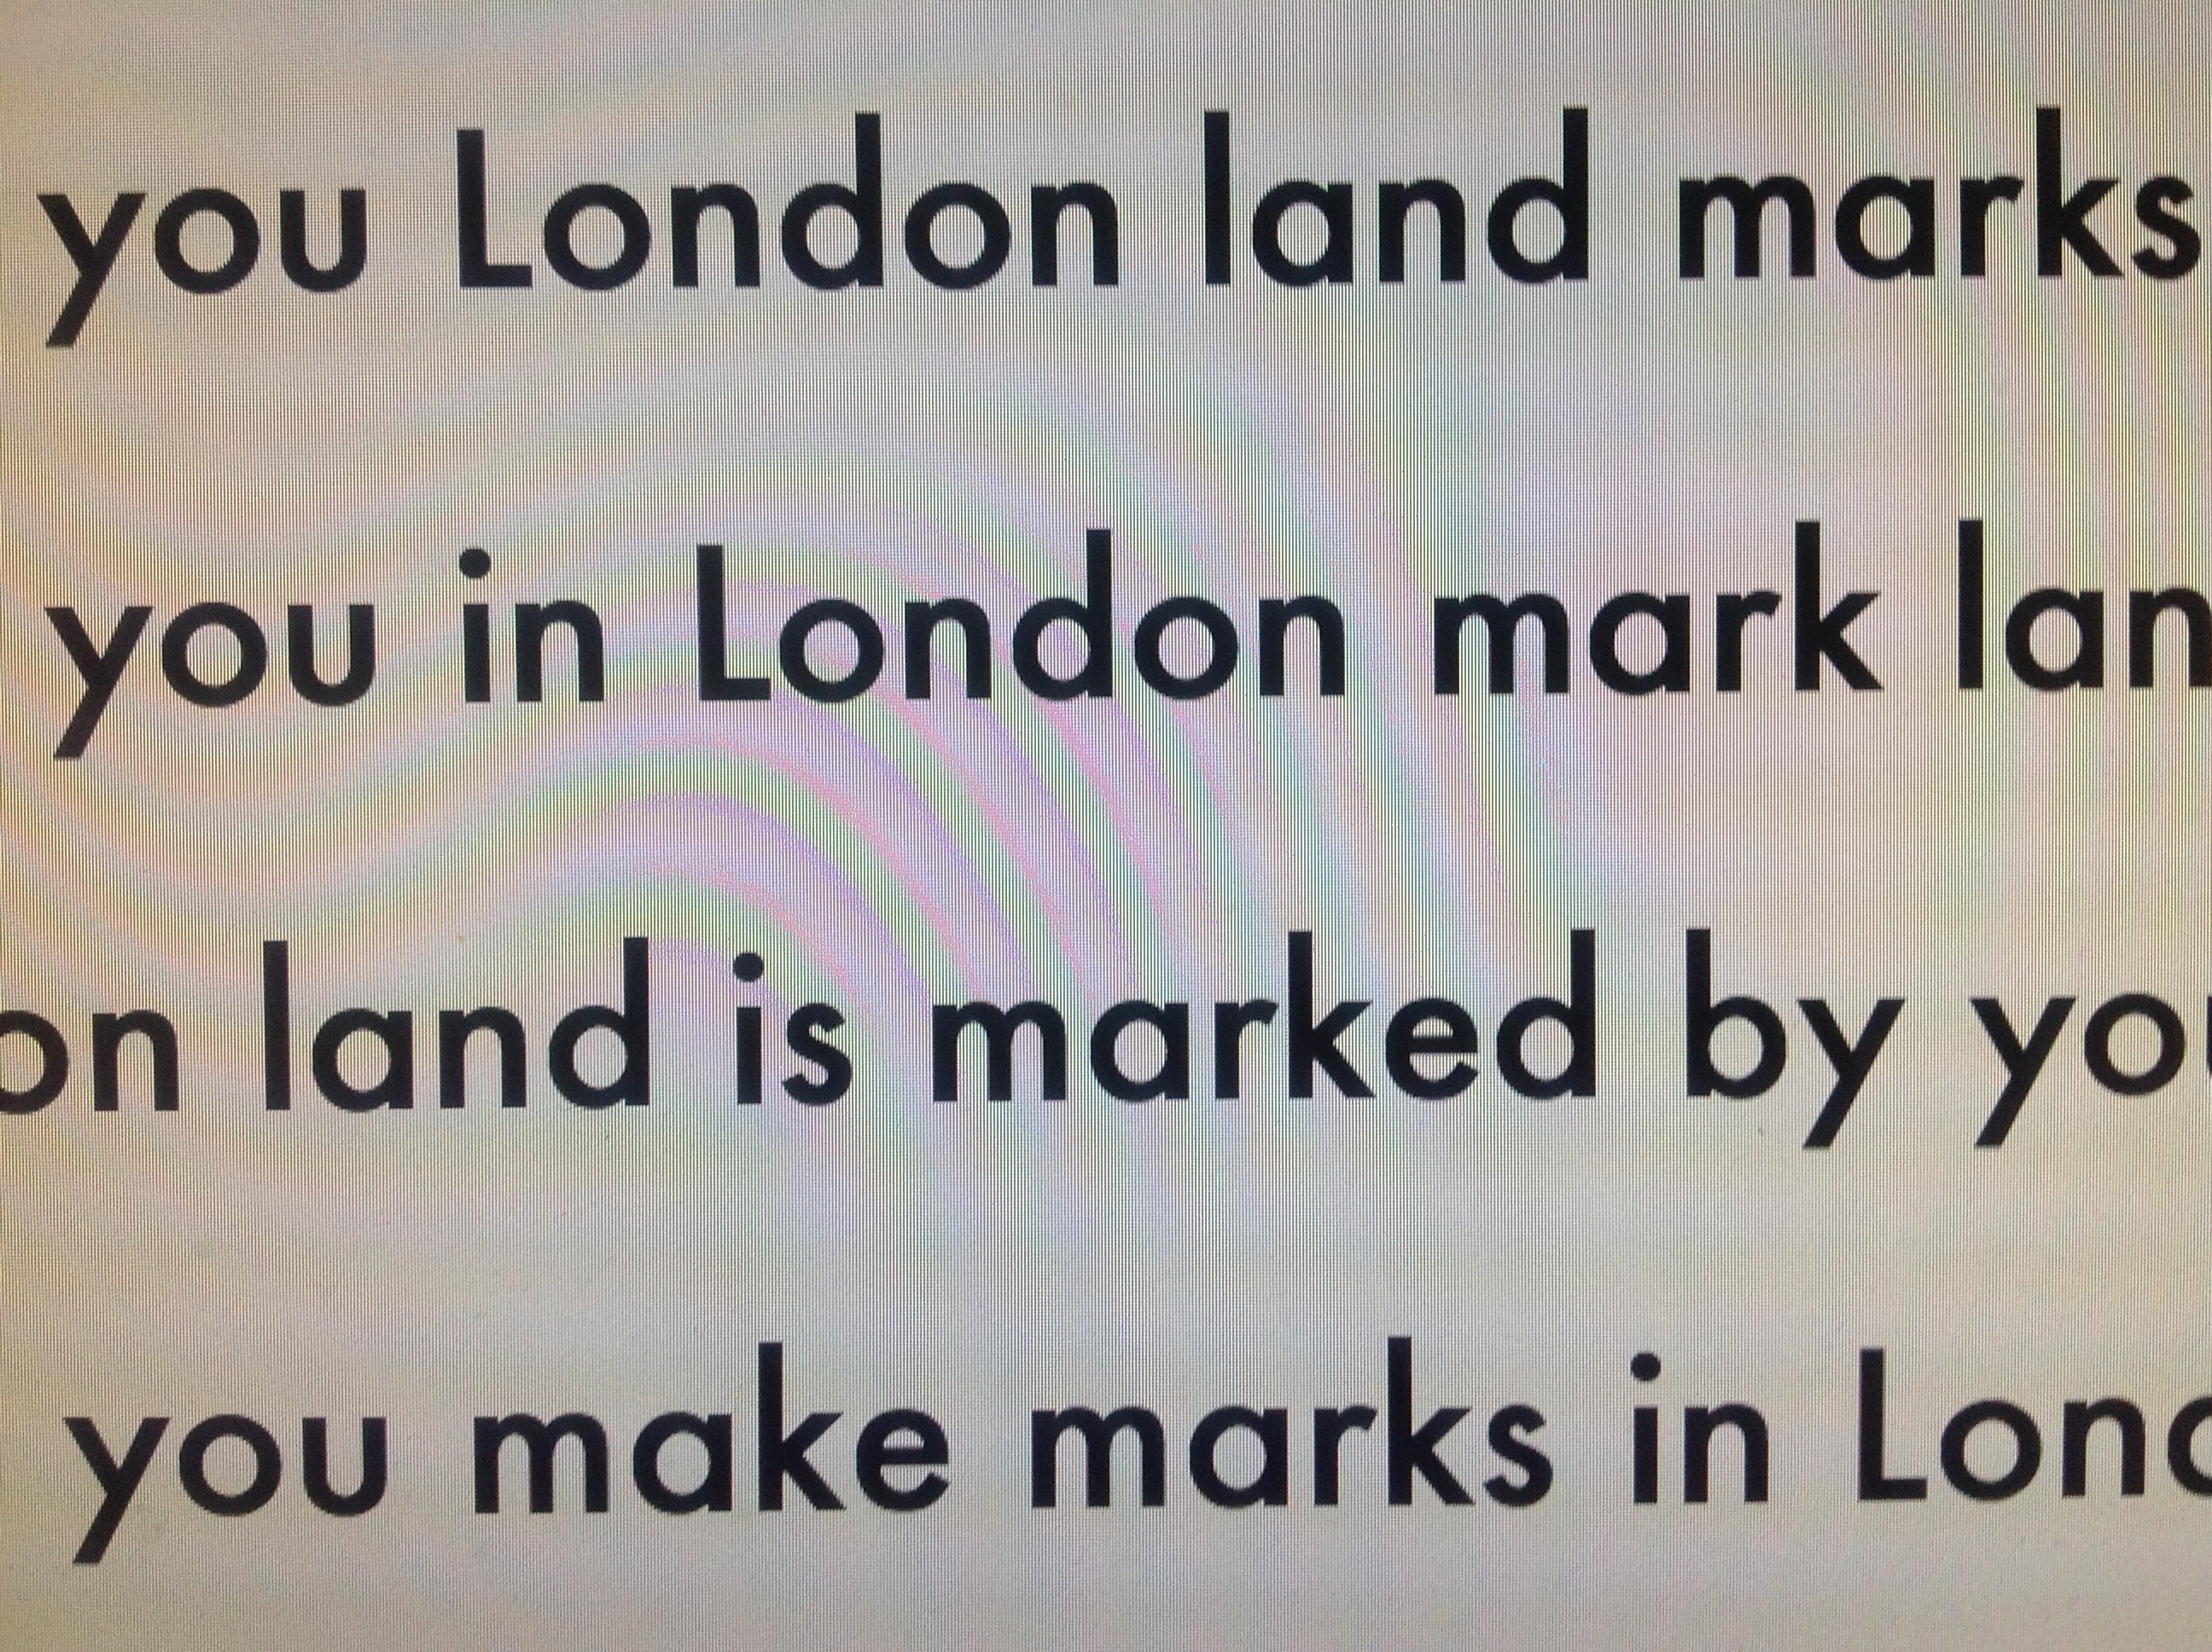 Redell Olsen London Land Marks 2007